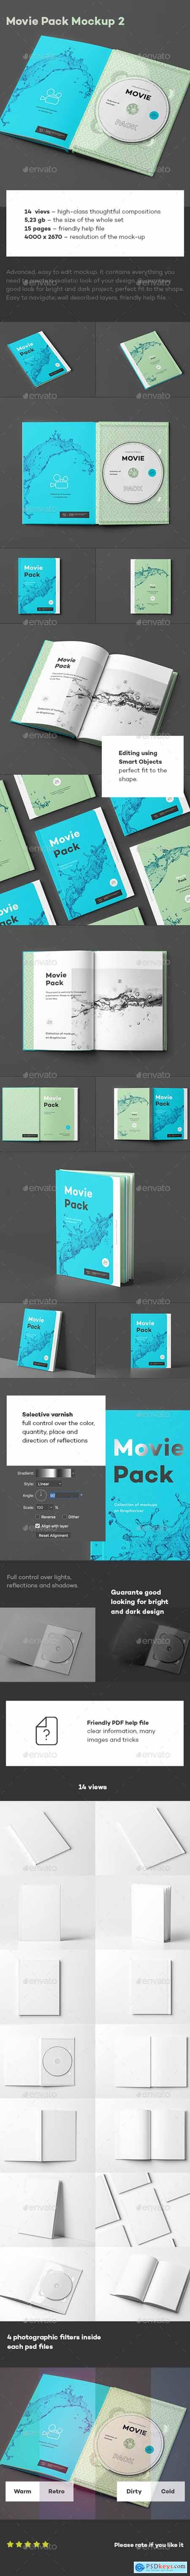 Movie Pack Mock-up 2 24245529